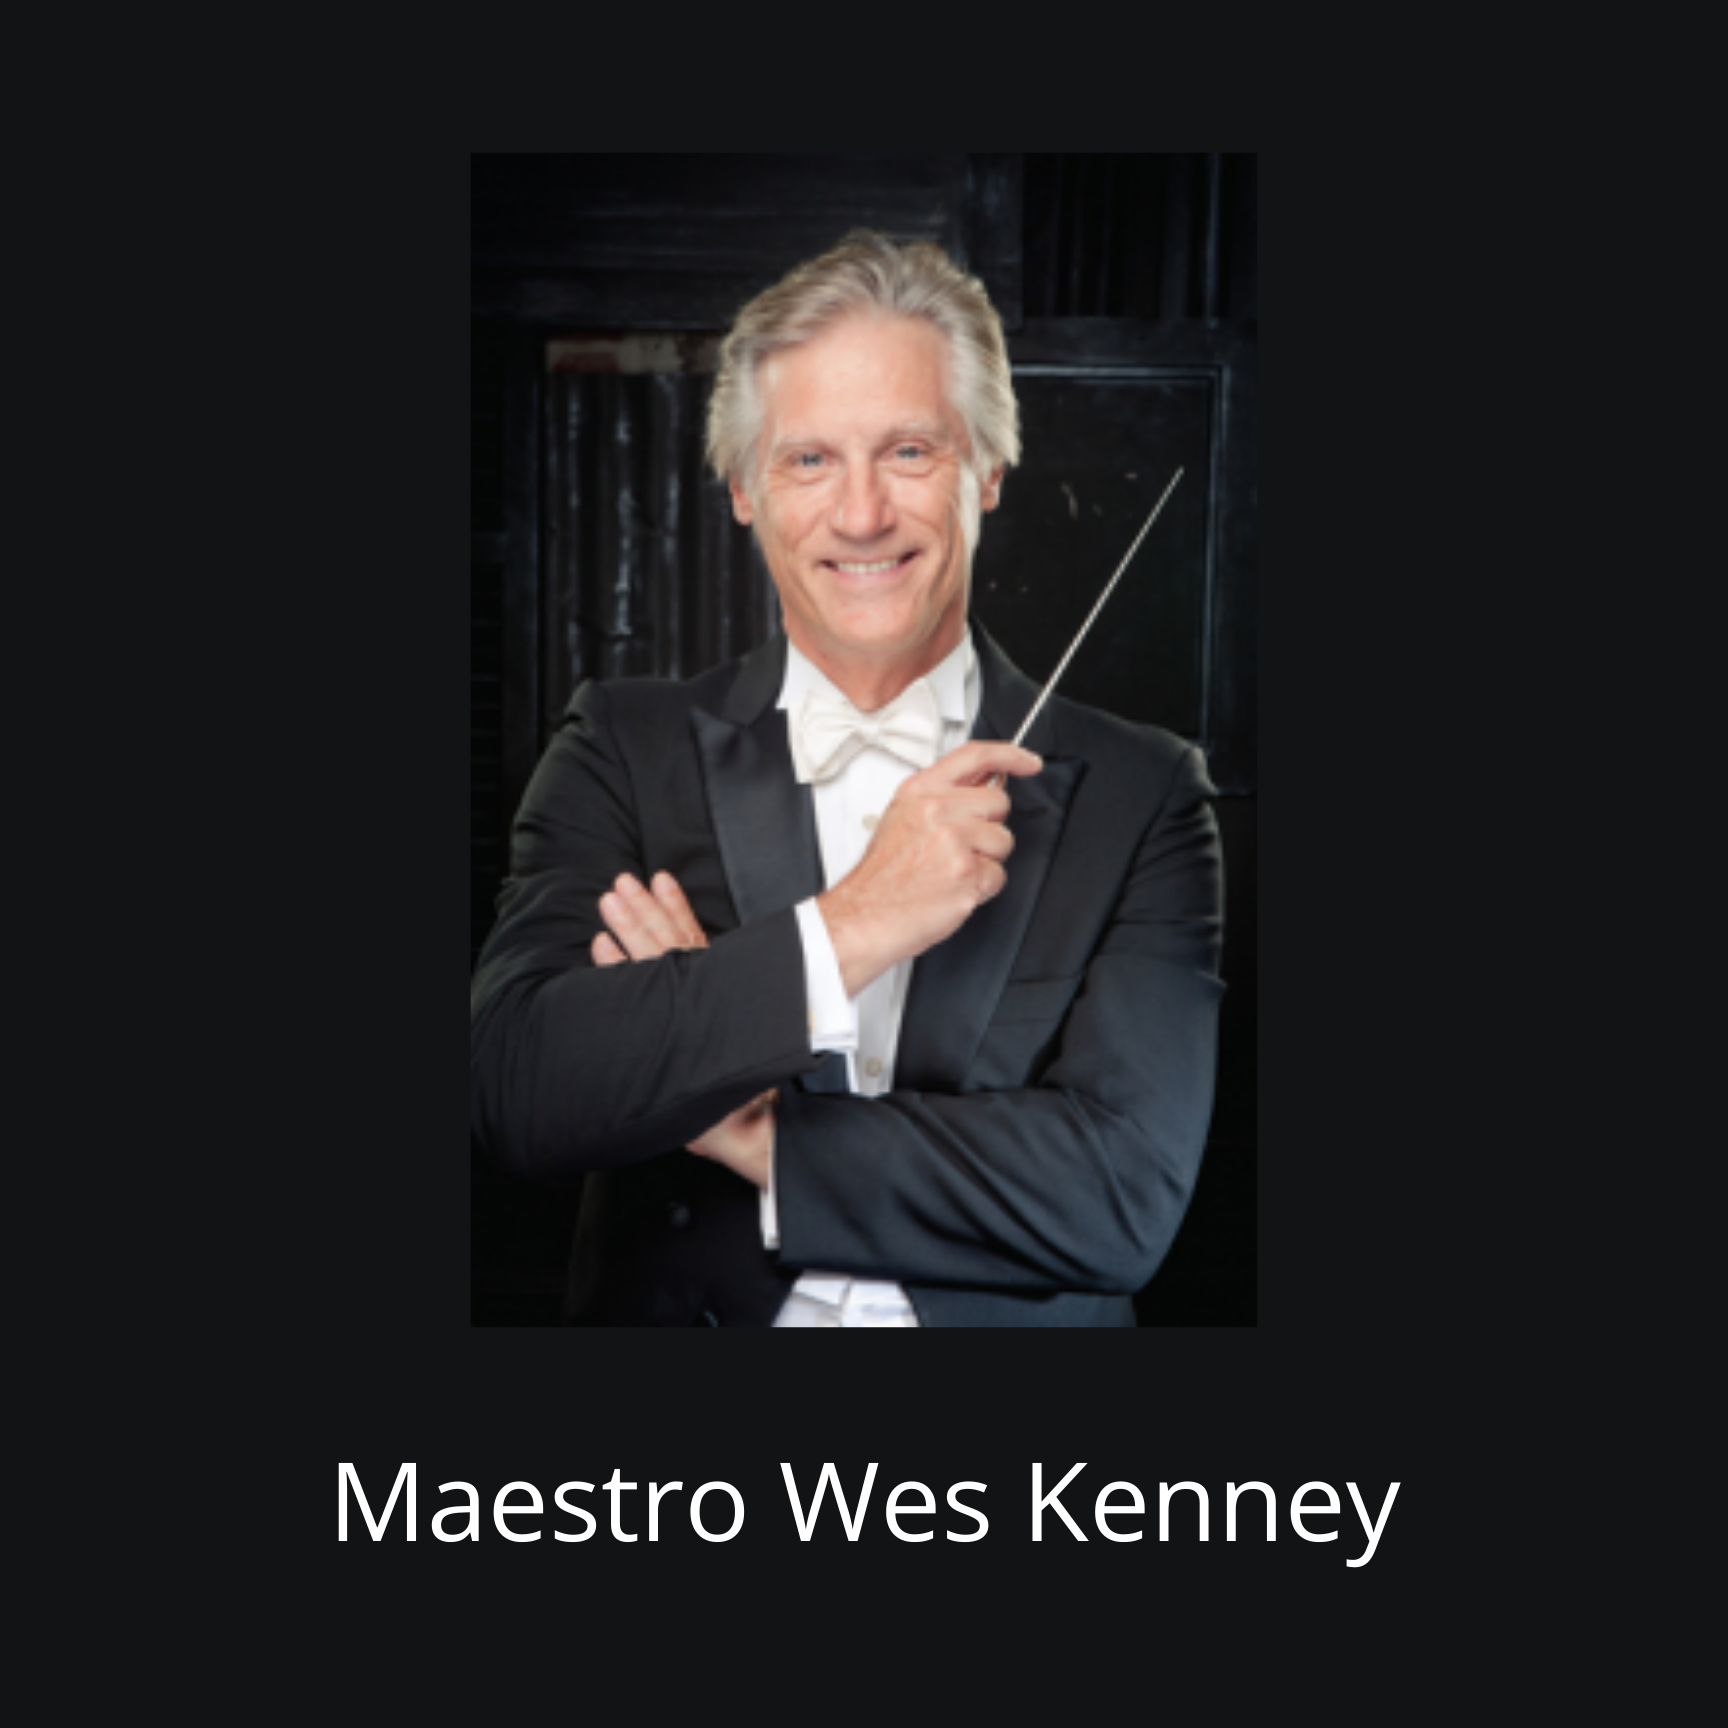 Maestro Wes Kenney selected as Honored Artists by The American Prize